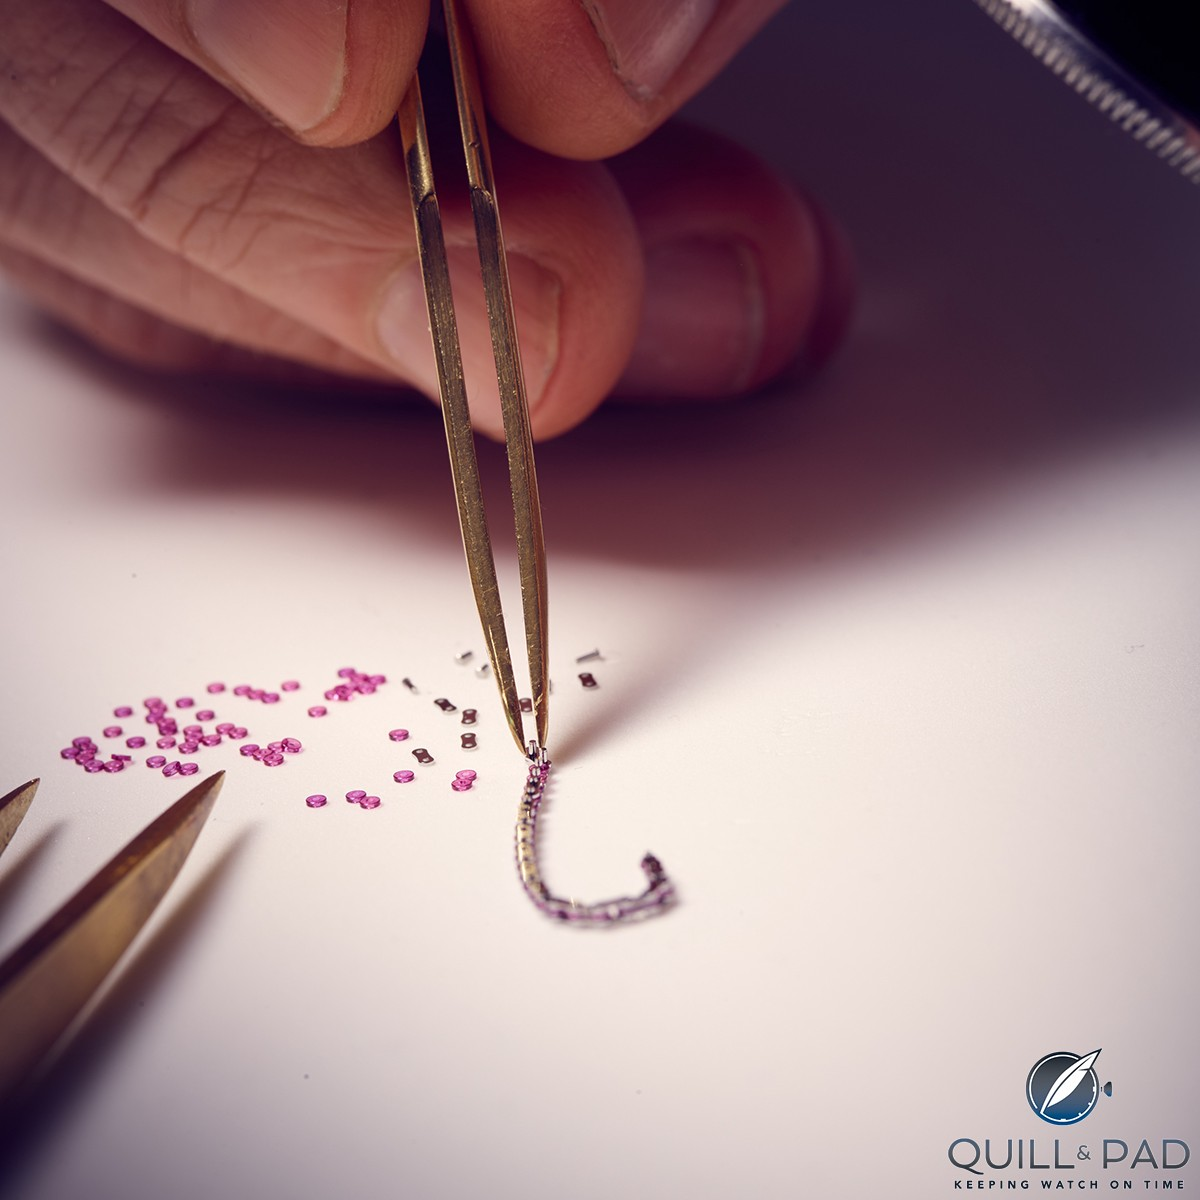 Assembling a patented ruby link constant force chain of Romain Gauthier's Logical One